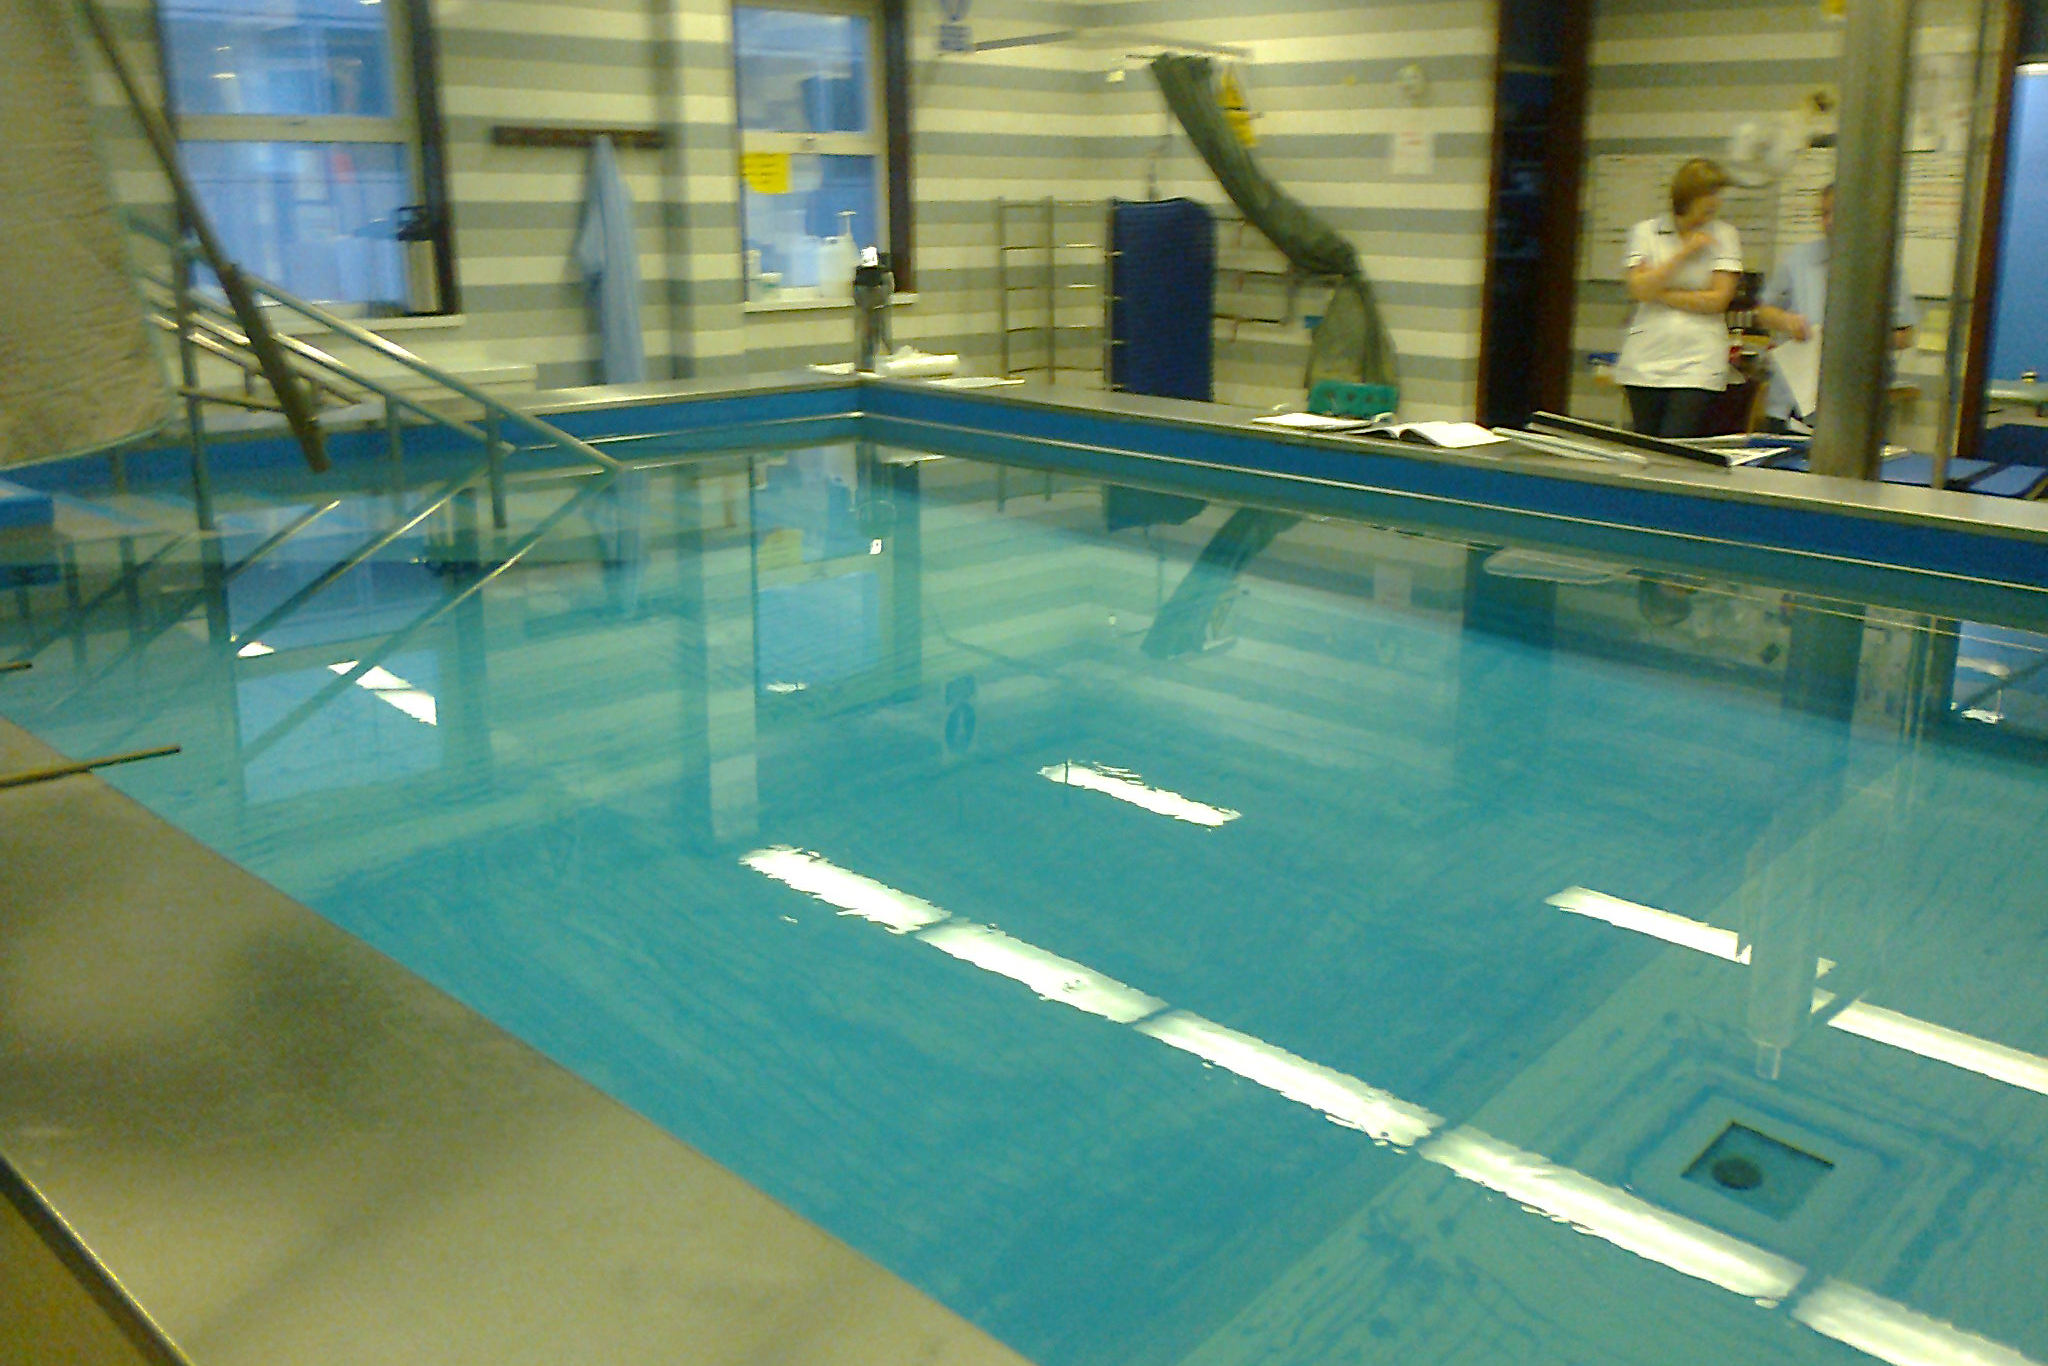 Hydrotherapy Pool Lining At Royal Victoria Hospital